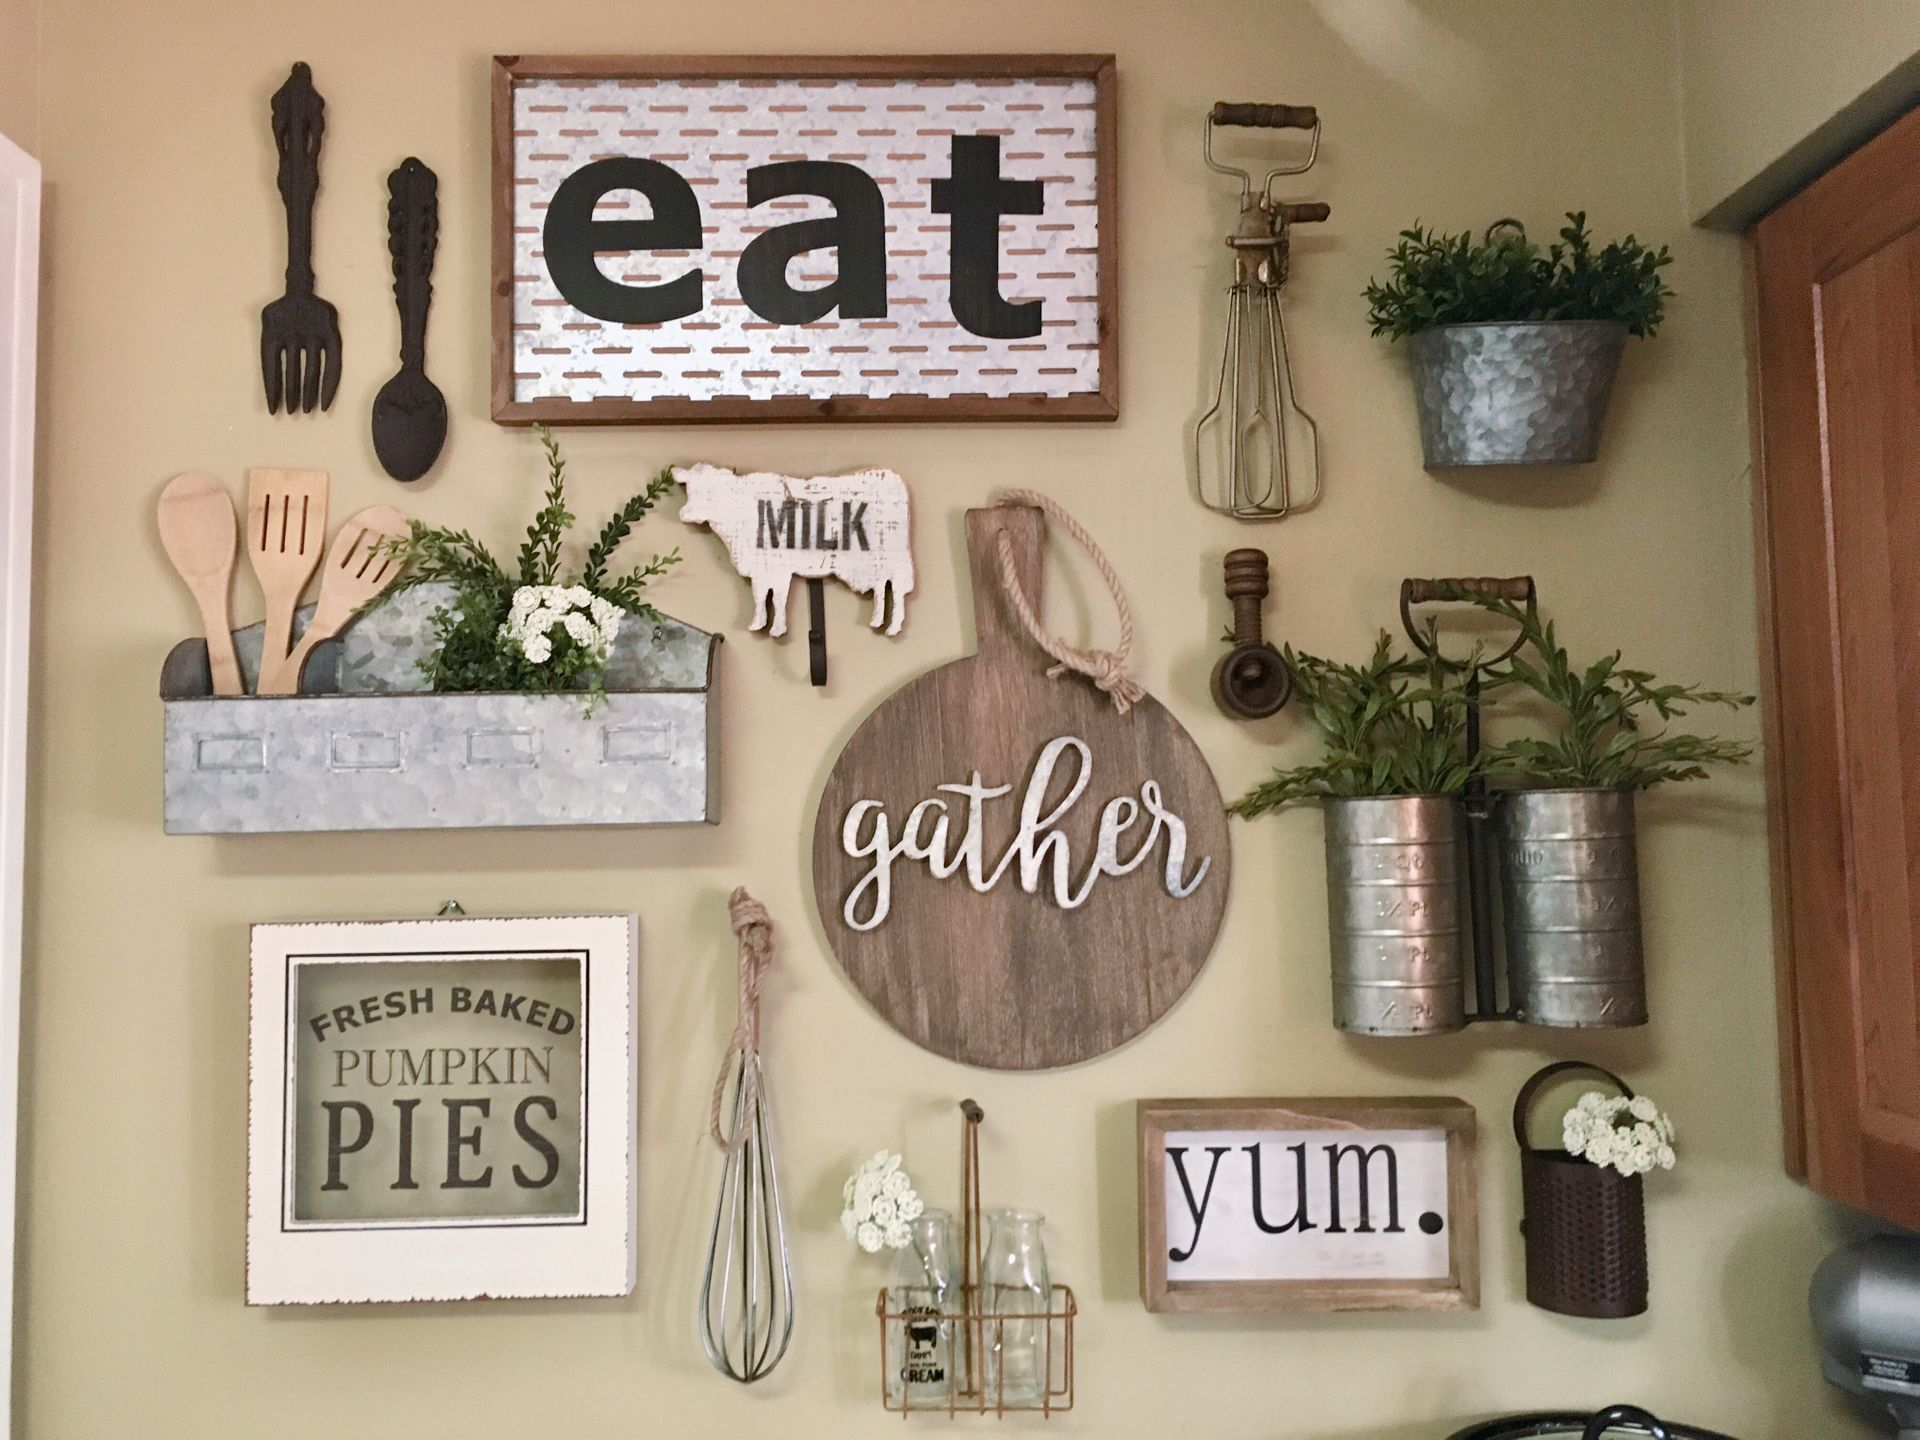 My kitchen gallery wall #KitchenDecor #GalleryWall #Farmhouse #Decorating #WallDecor #HobbyLobby 38 Dreamiest Farmhouse Kitchen Decor and Design Ideas to Fuel Your Remodel #farmhouse #farmhousestyle #farmhousestorage #farmhousedecor #rustichome #rusticdecor #rustichomedecor ...on or natural stones such as granite limestone and soapstone. A rustic style kitchen can be a really beautiful and attractive feature in your home ...mplement everything from bear mugs to bear placemats to bear towel holde